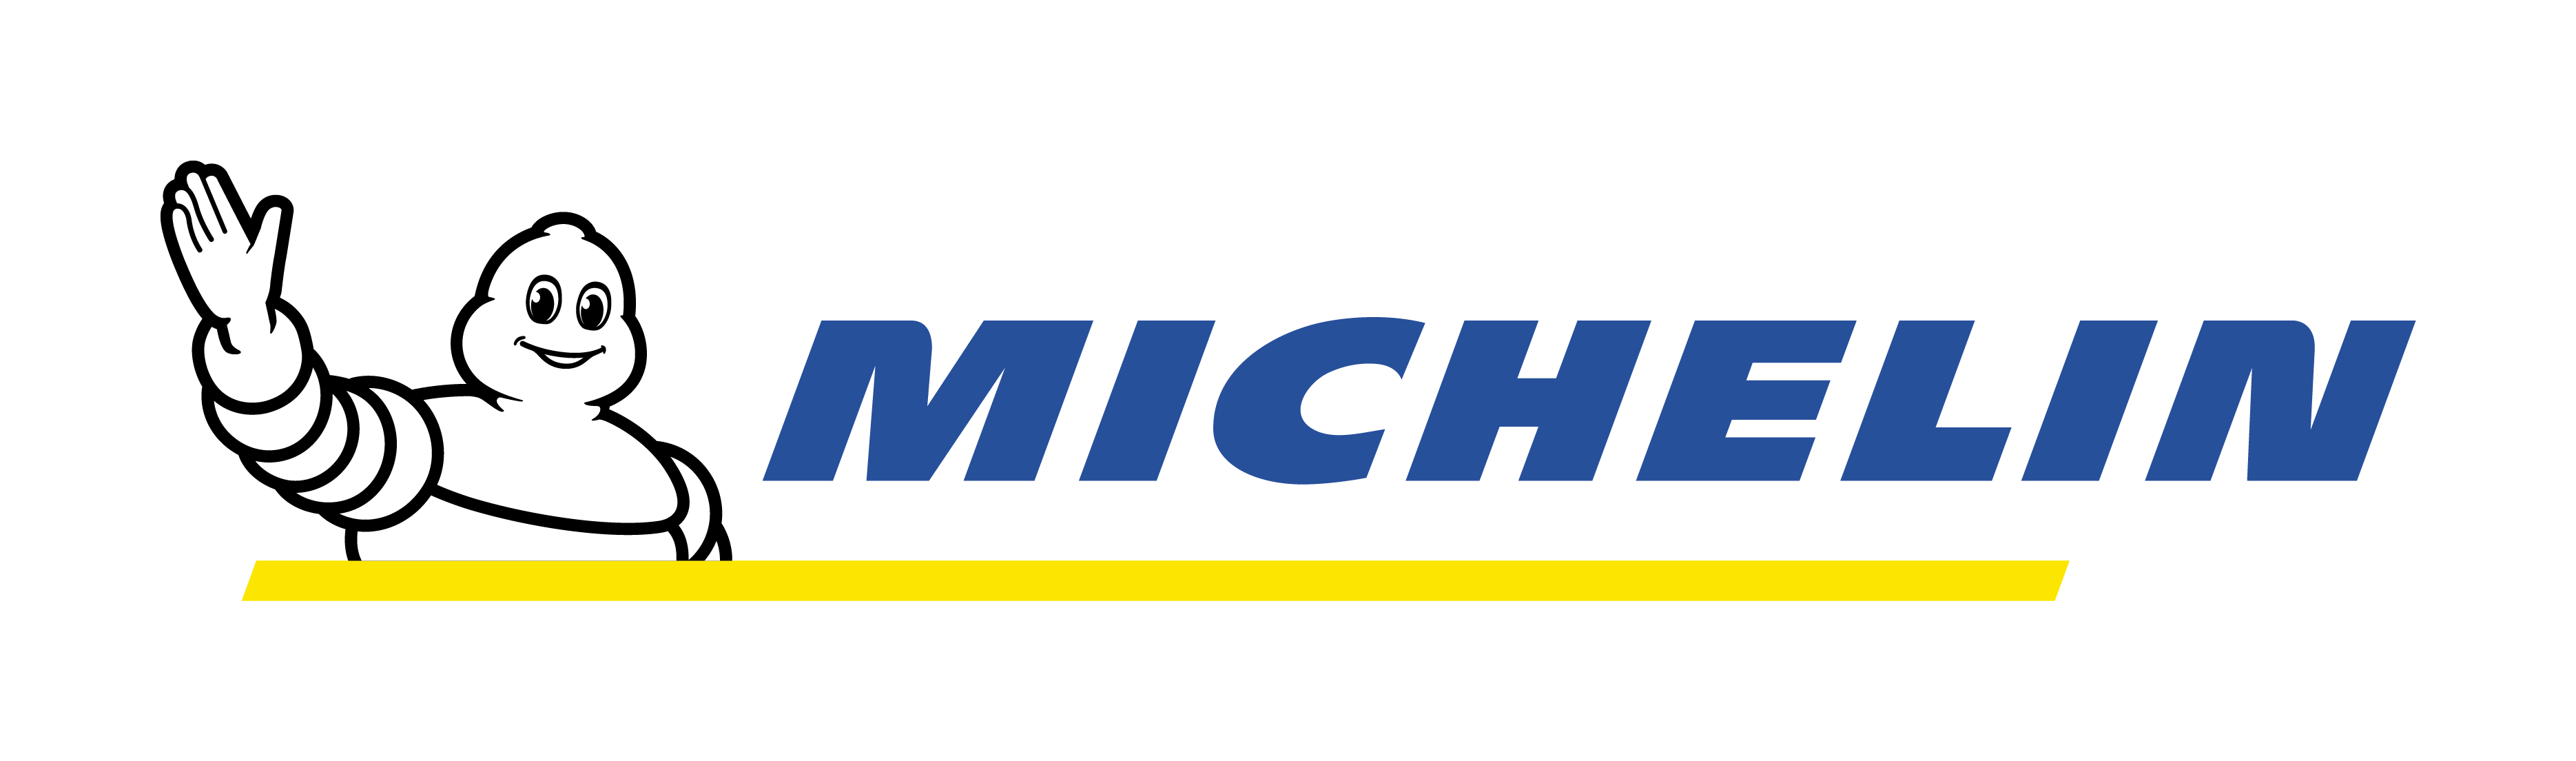 Michelin Tires Logo PNG - 103656